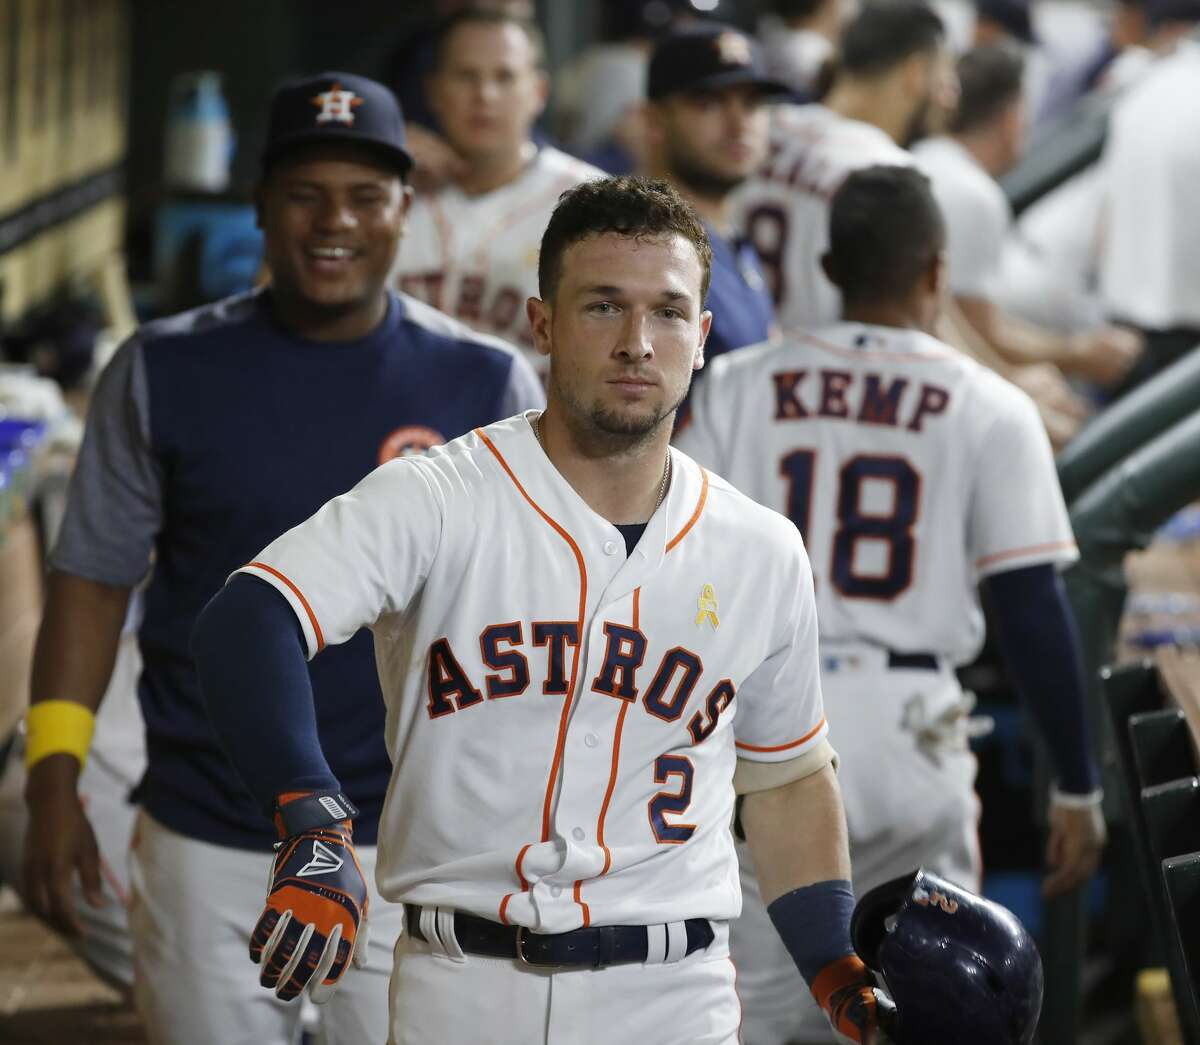 From making the dugout camera stare his calling card to his on-field success, 2018 was quite the memorable season for Alex Bregman.